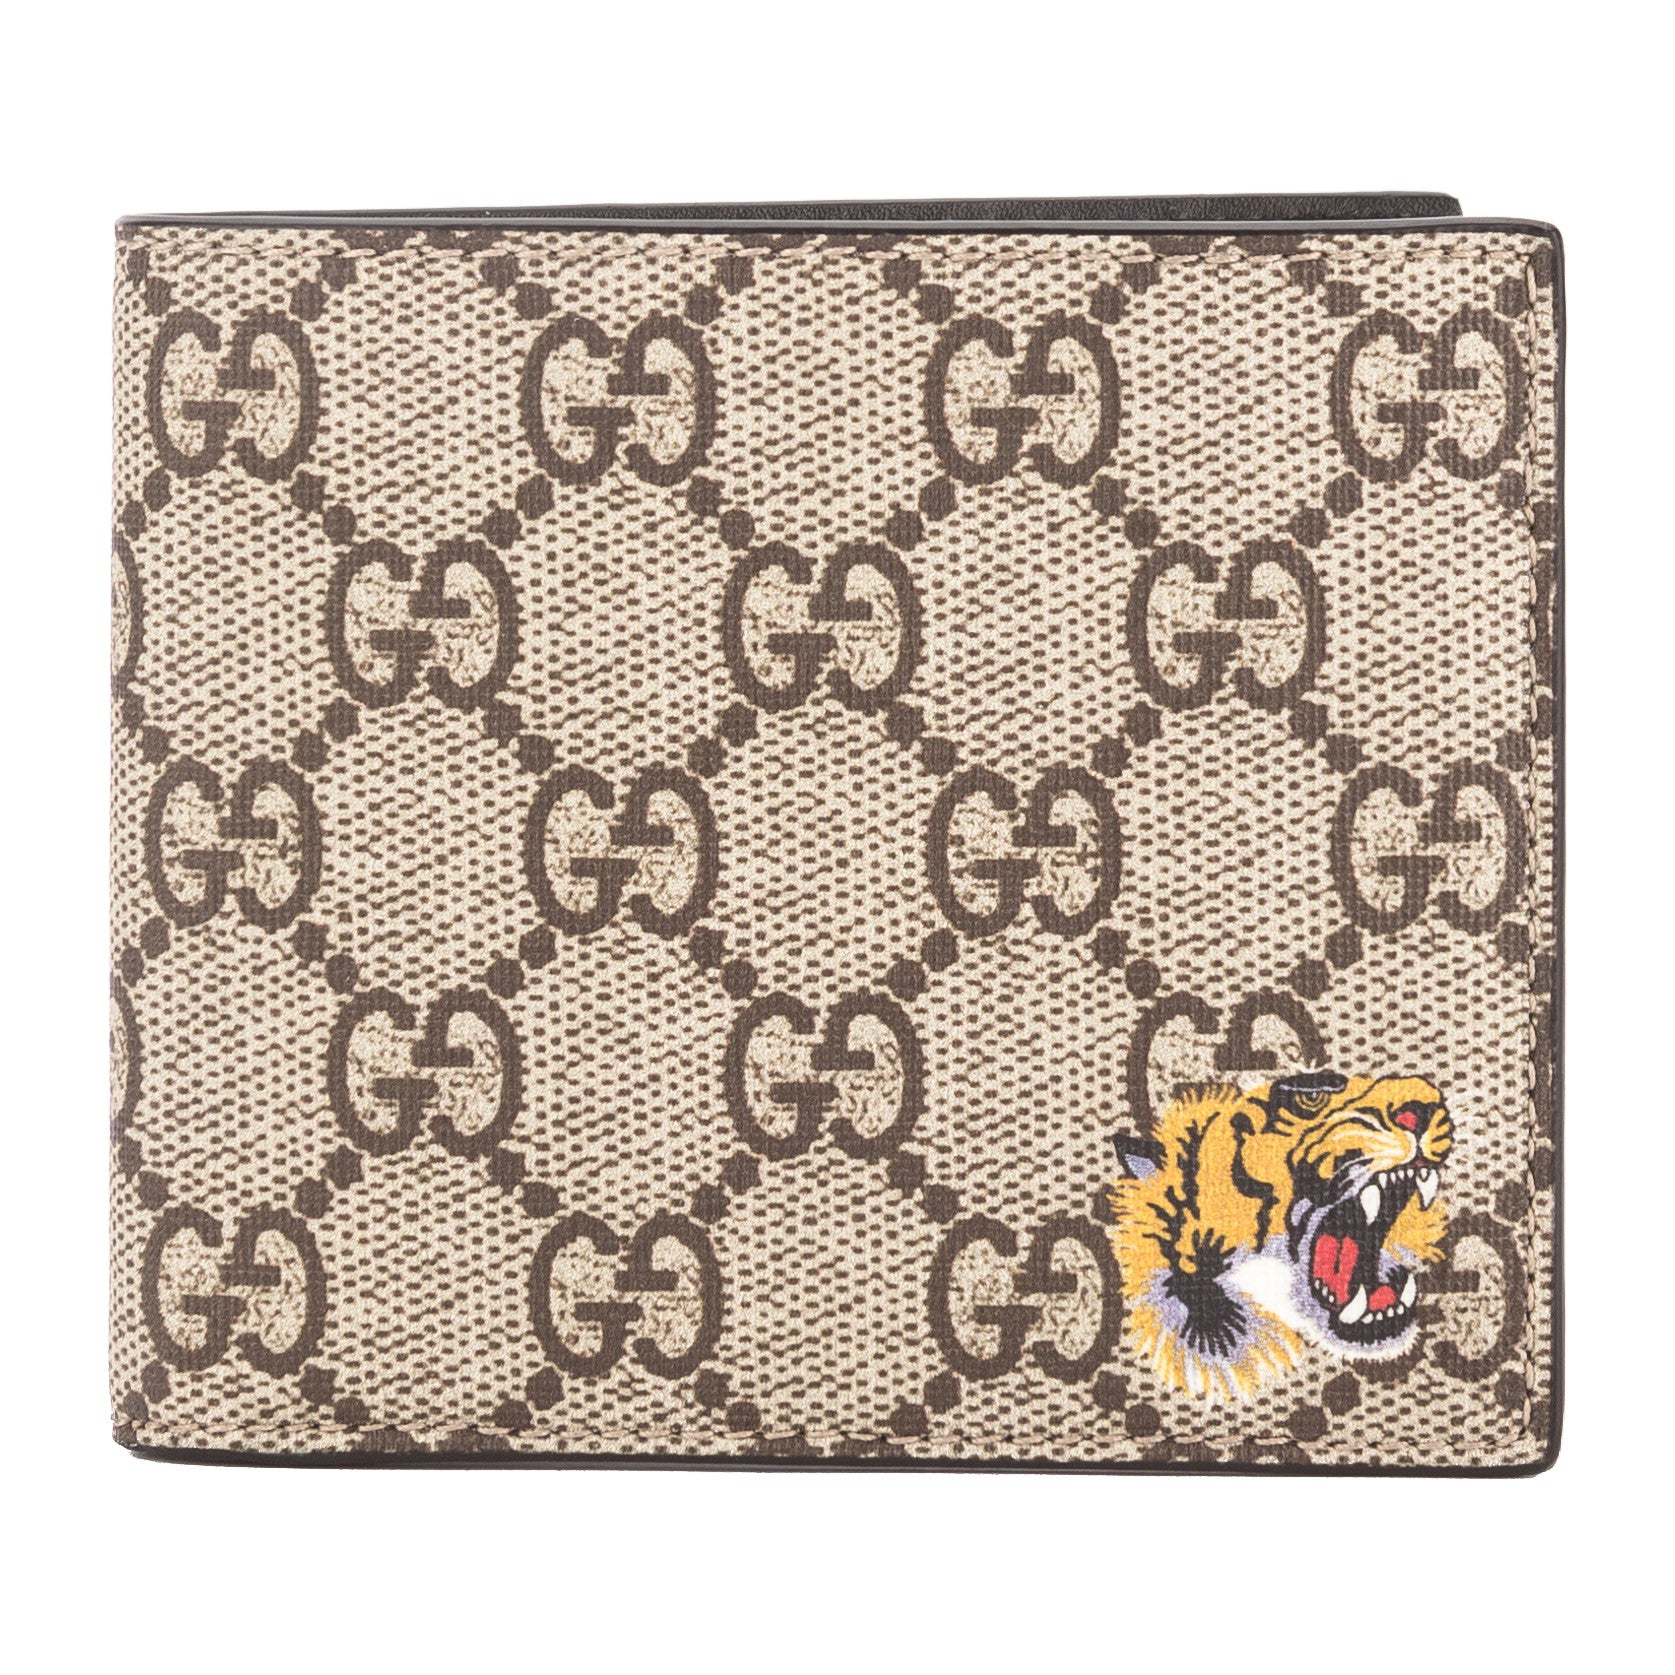 88ad3e6aac9 Gucci GG Supreme Canvas Tiger Print Wallet (New with Tags) - 3452019 ...